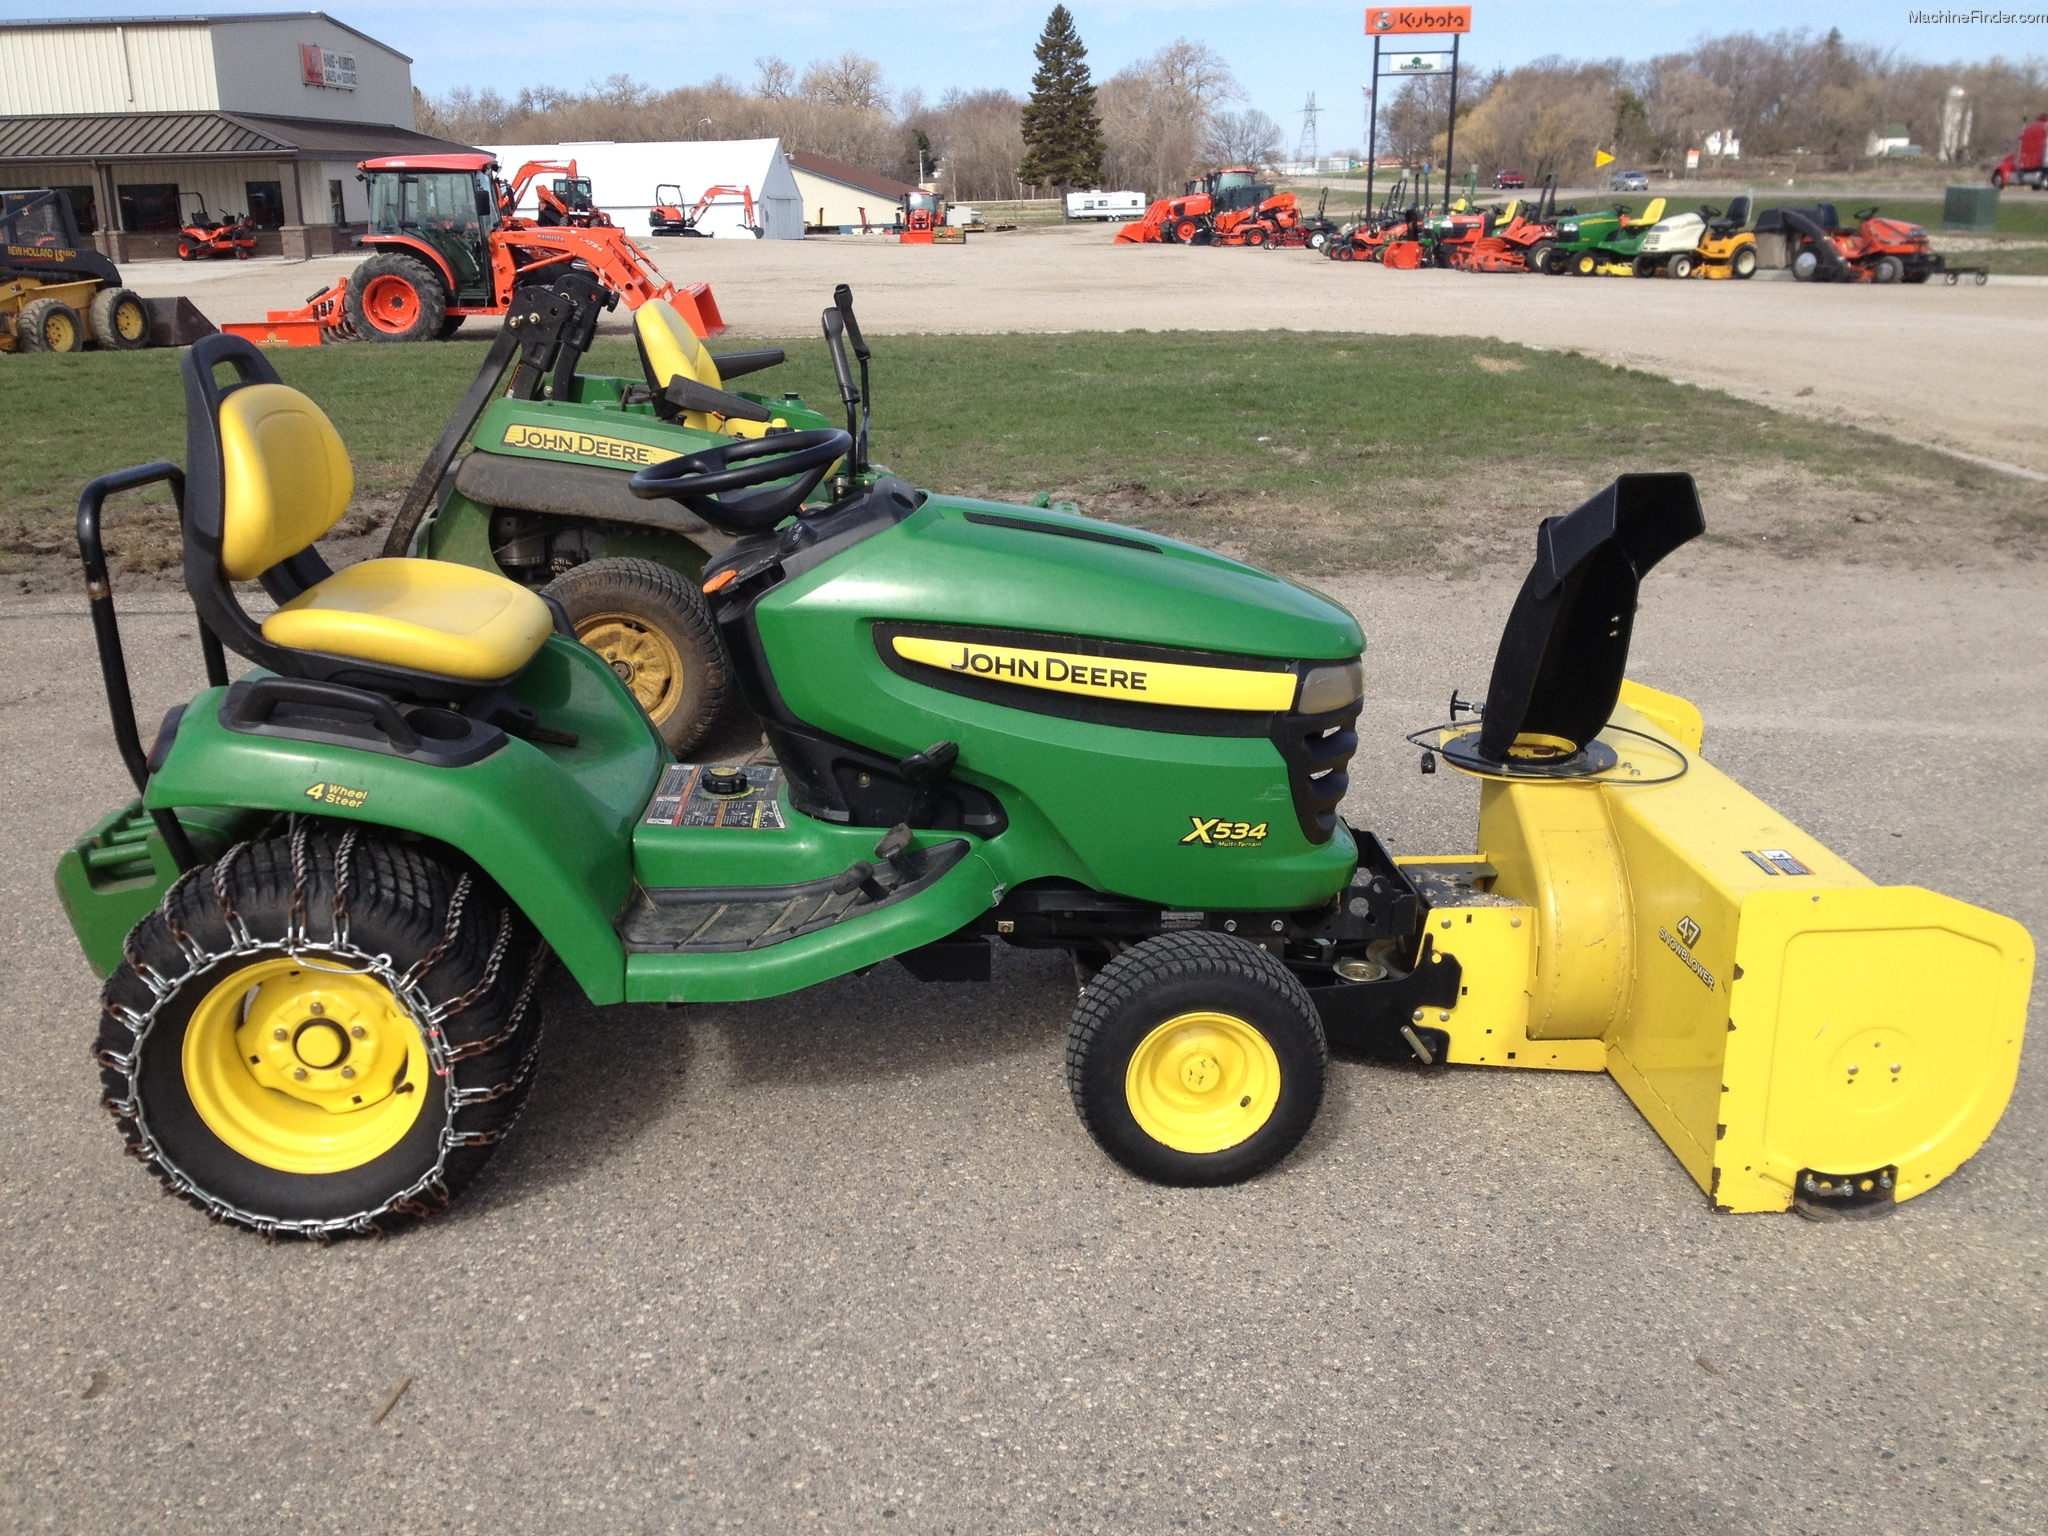 Used John Deere 47 54 Snow Blower Buying Guide Autos Post